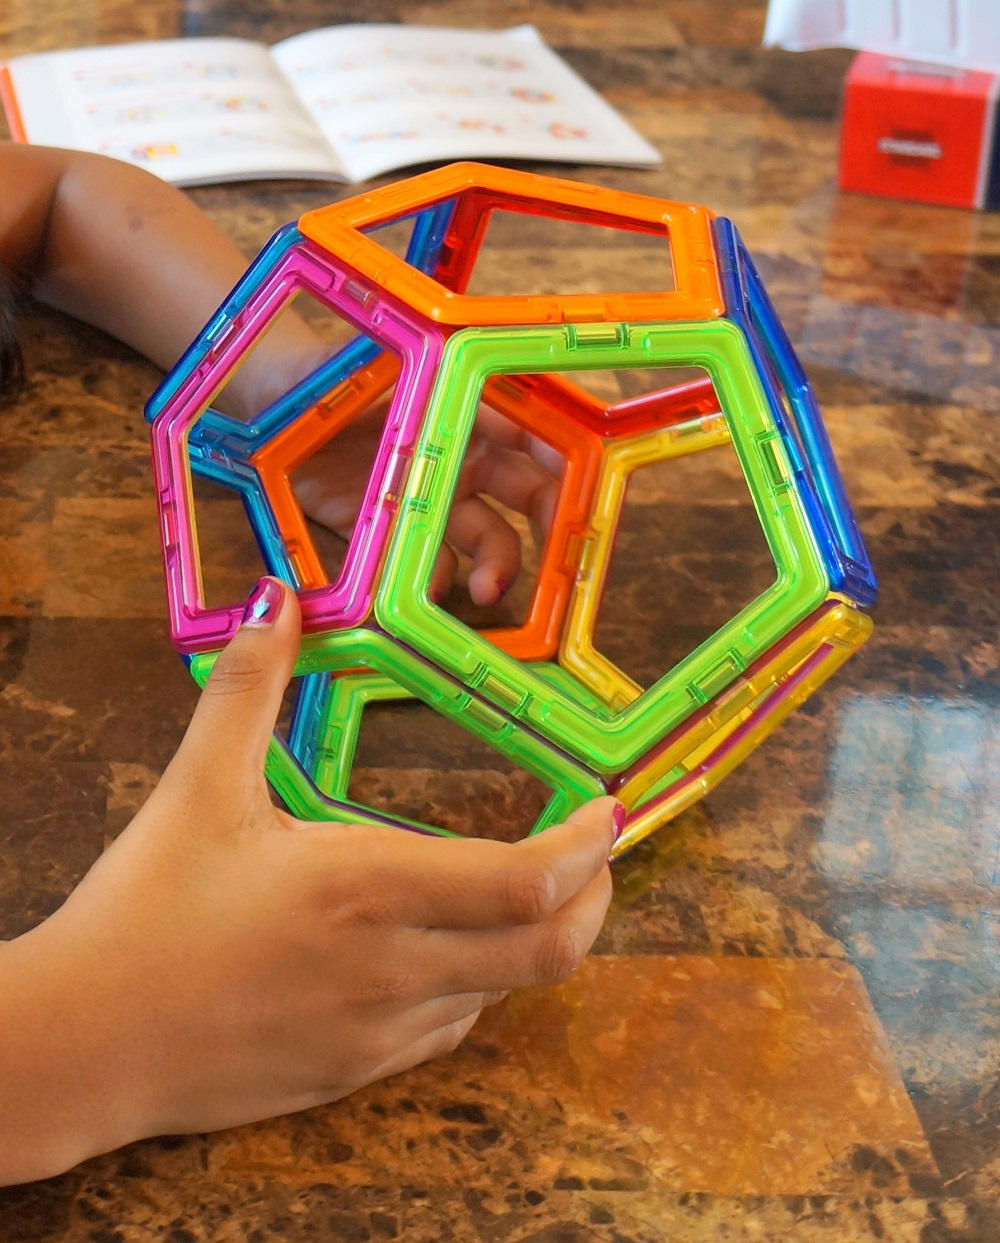 dodecahedron12